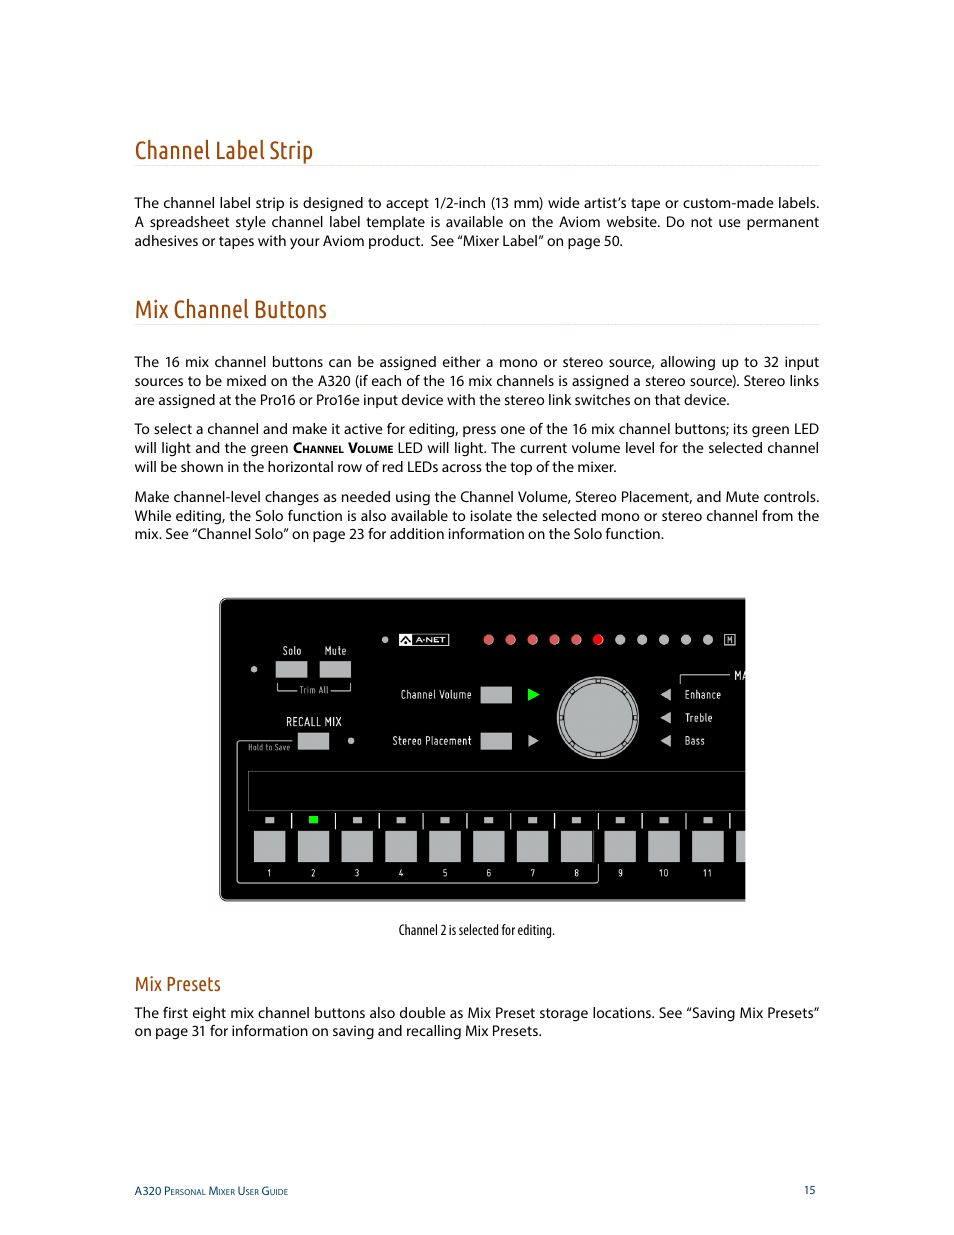 Channel label strip, Mix channel buttons, Mix presets | Aviom A320 ...